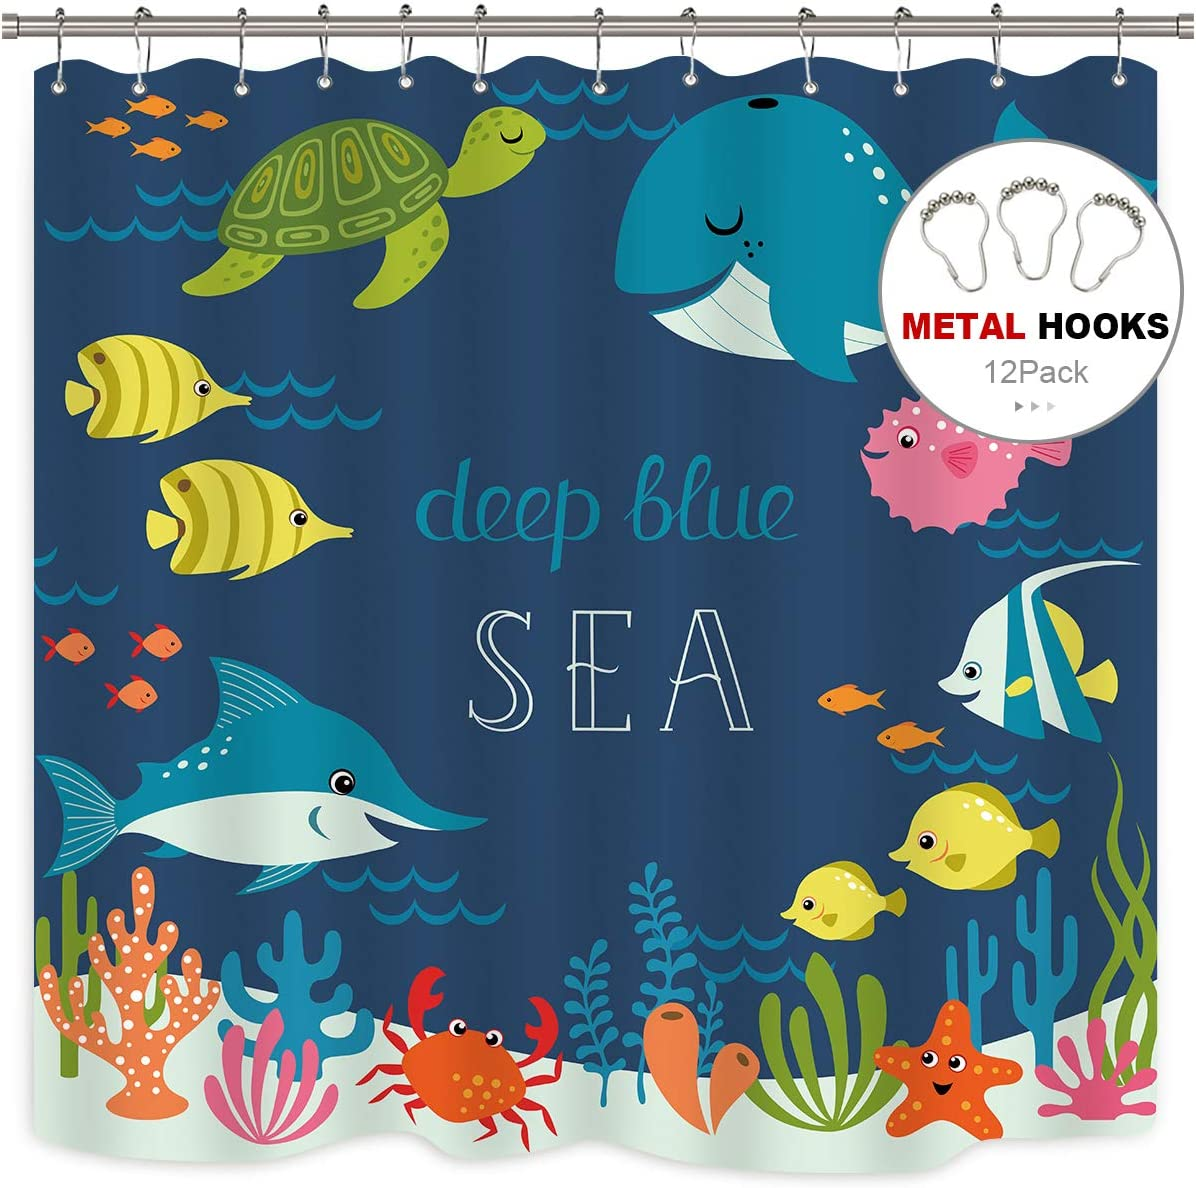 Riyidecor Ocean Fish Shower Curtain Kids Cartoon Underwater Sea Animal Boys Girls Starfish Sea Turtle Decor 12 Pack Metal Hooks Fabric 72x72 Inch Bathroom Kitchen Dining